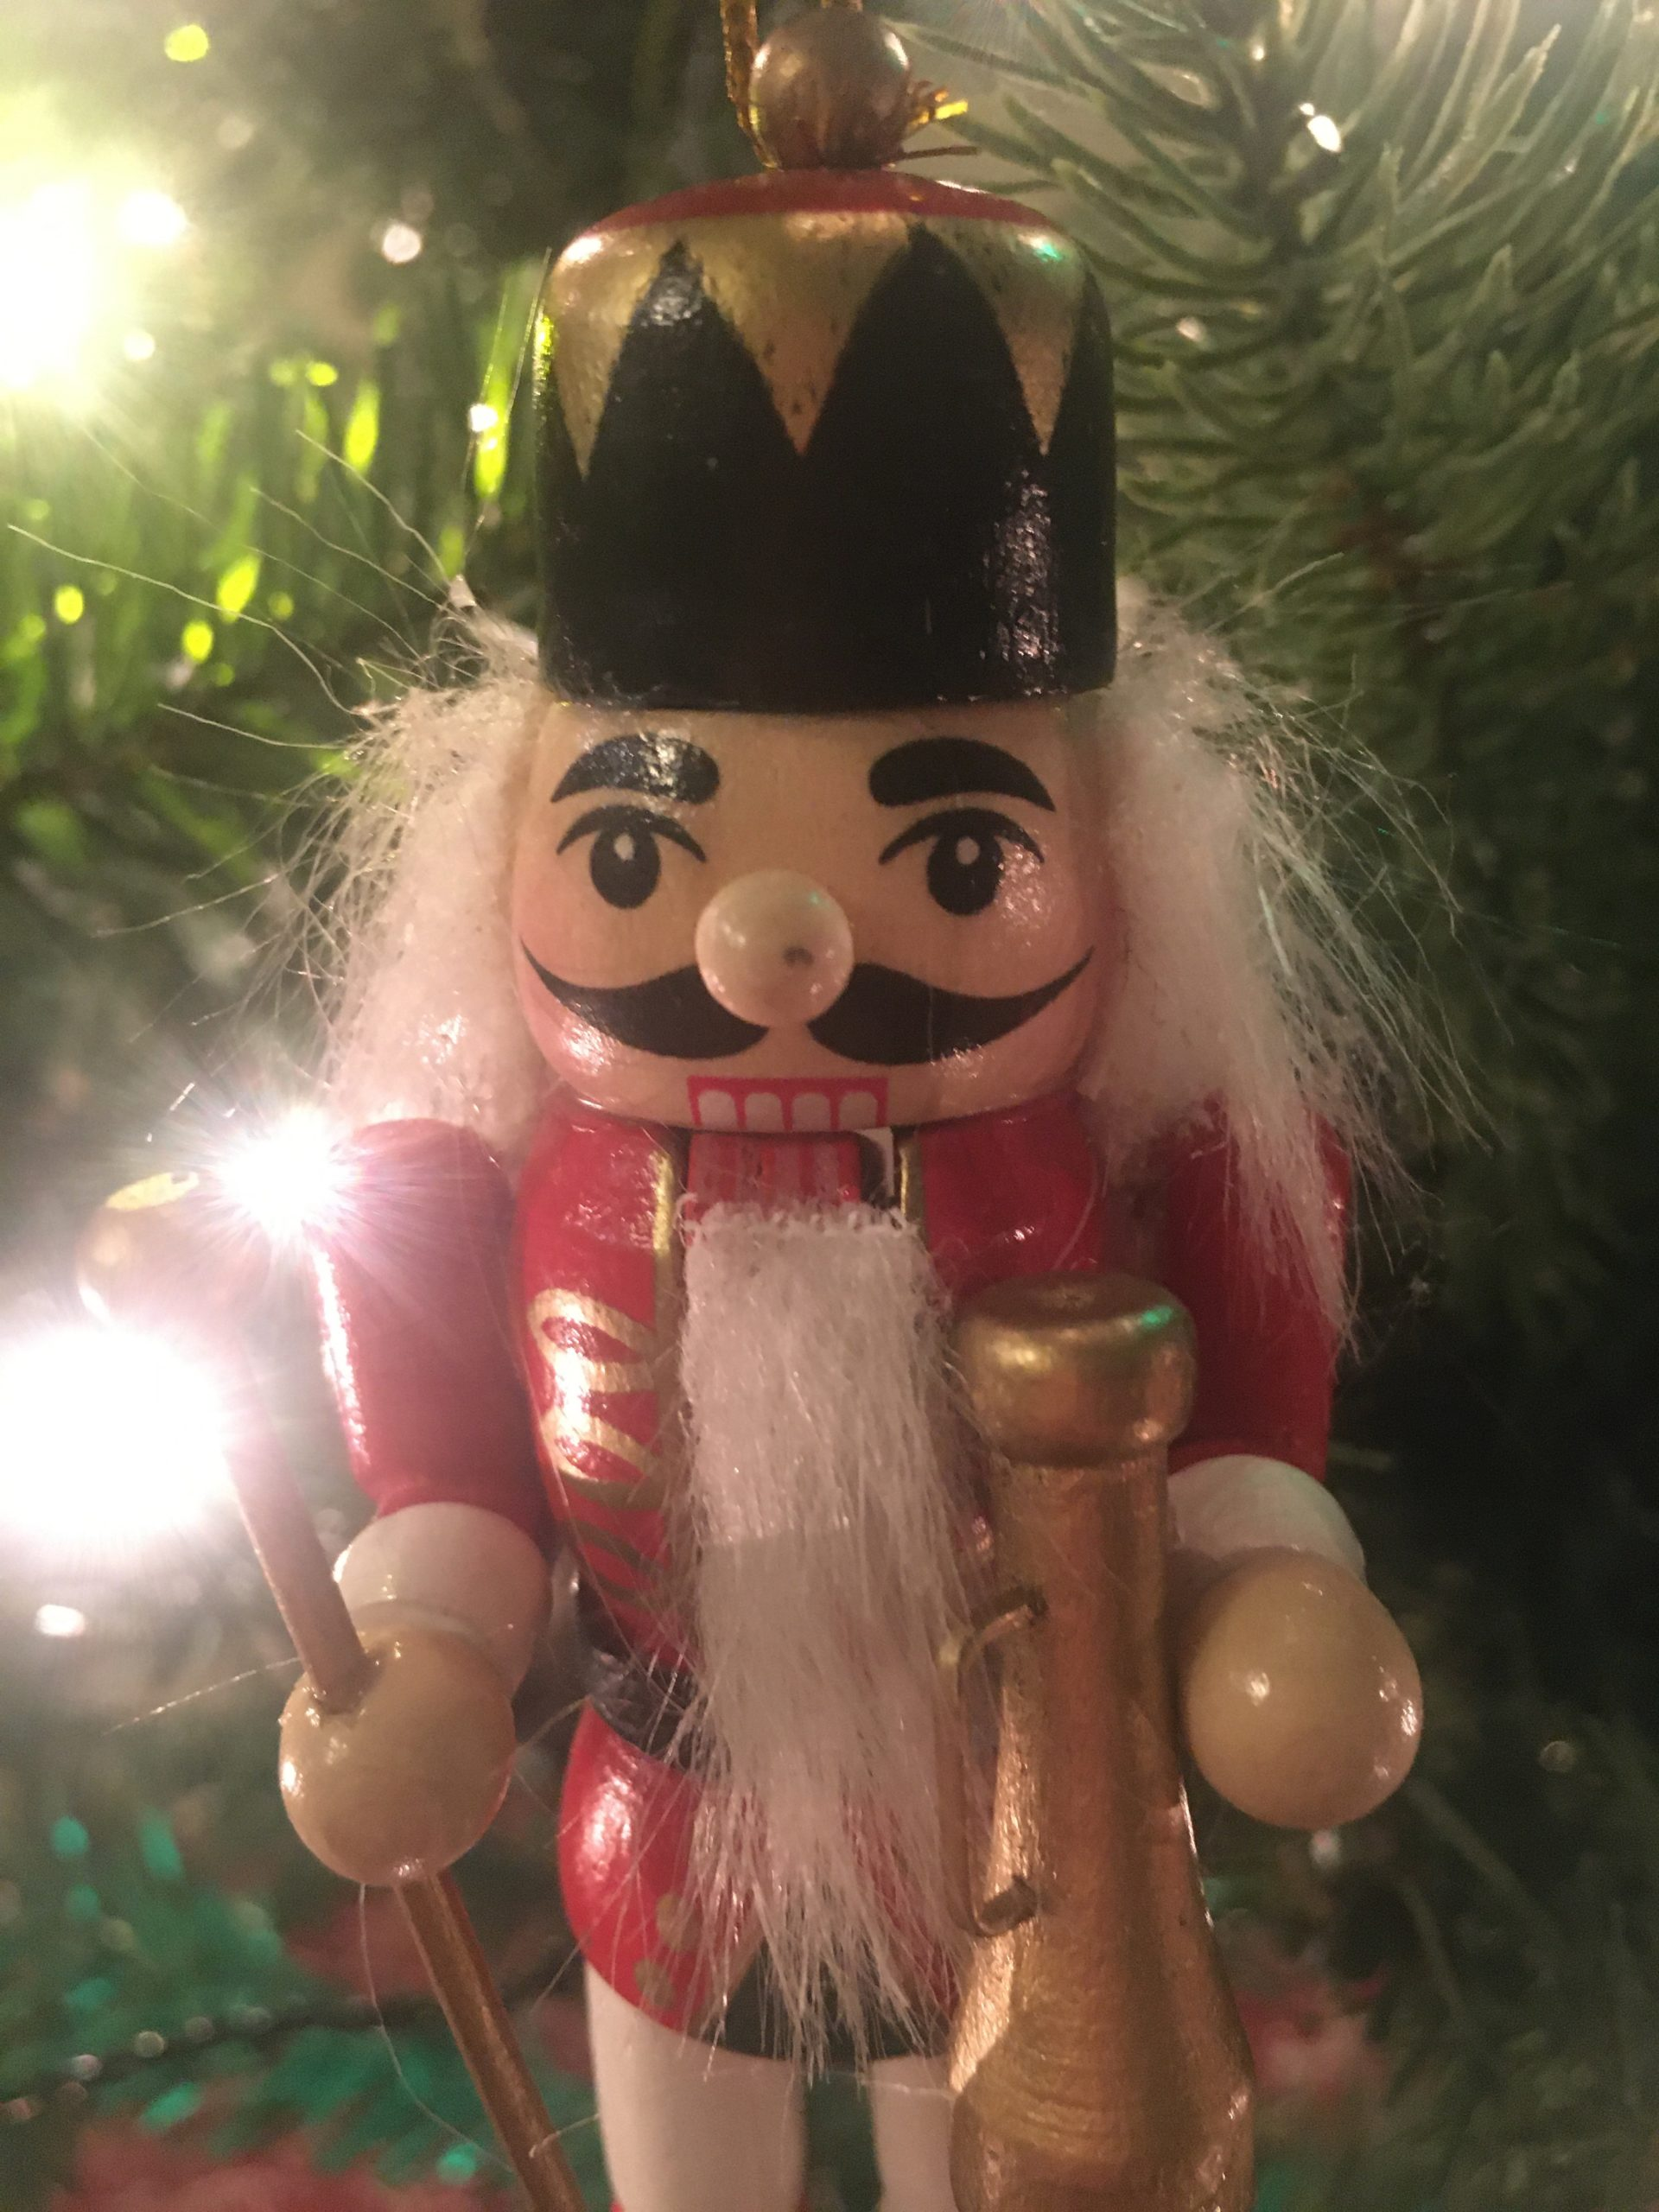 The Final Edit to our tree is yet to be completed: we don't have a topper. But for now, this awesome picture of a nutcracker soldier gives a nice Christmassy feeling.